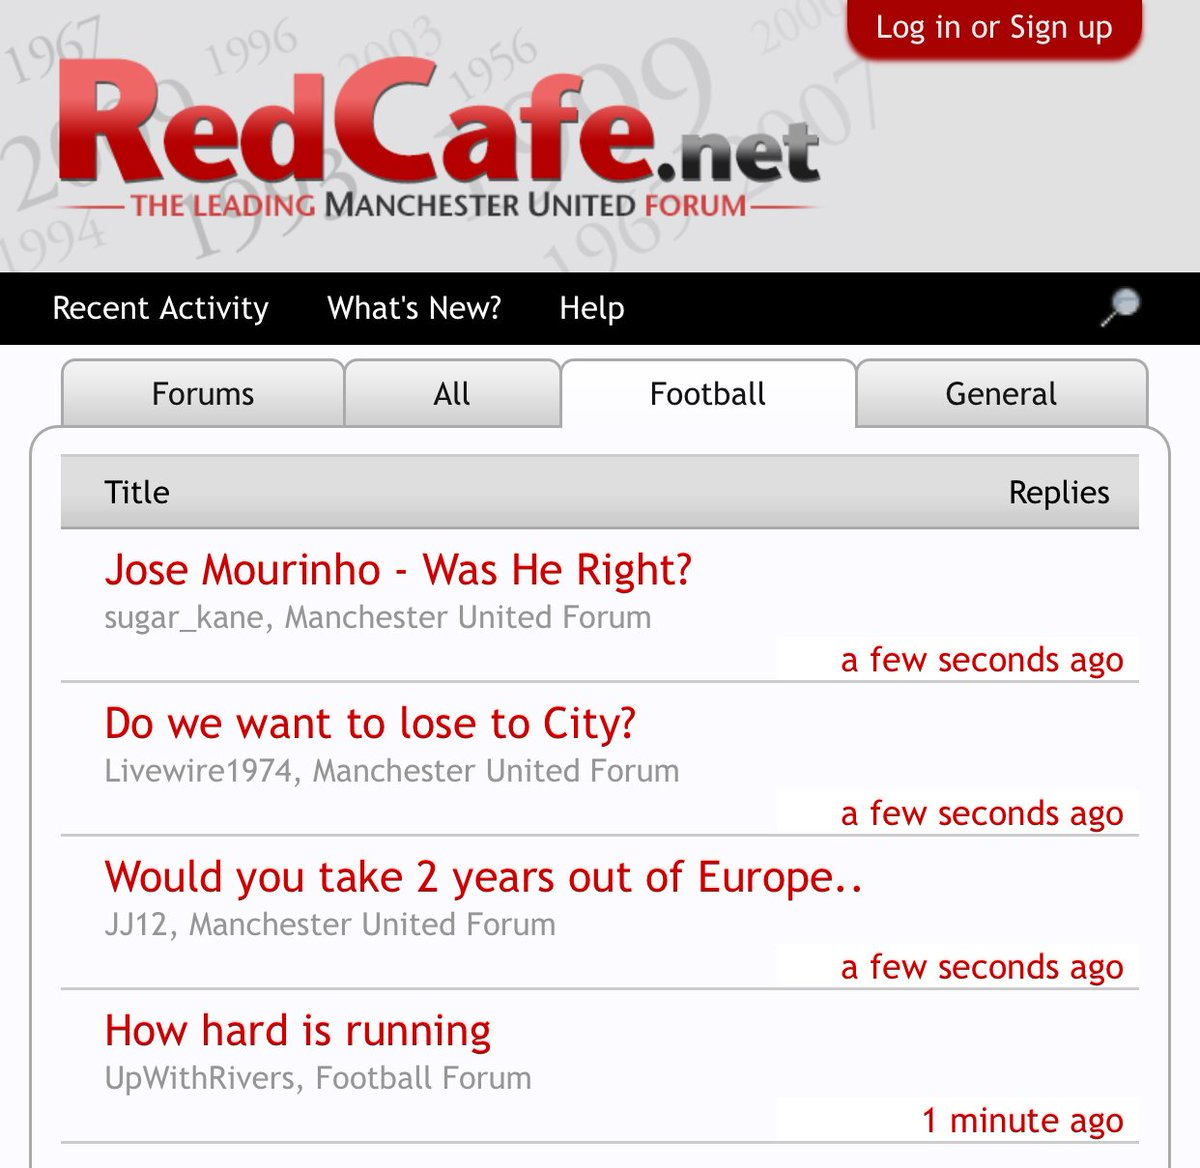 You can tell it's been a traumatic week for Manchester United when @red_cafe is just a list of existential questions